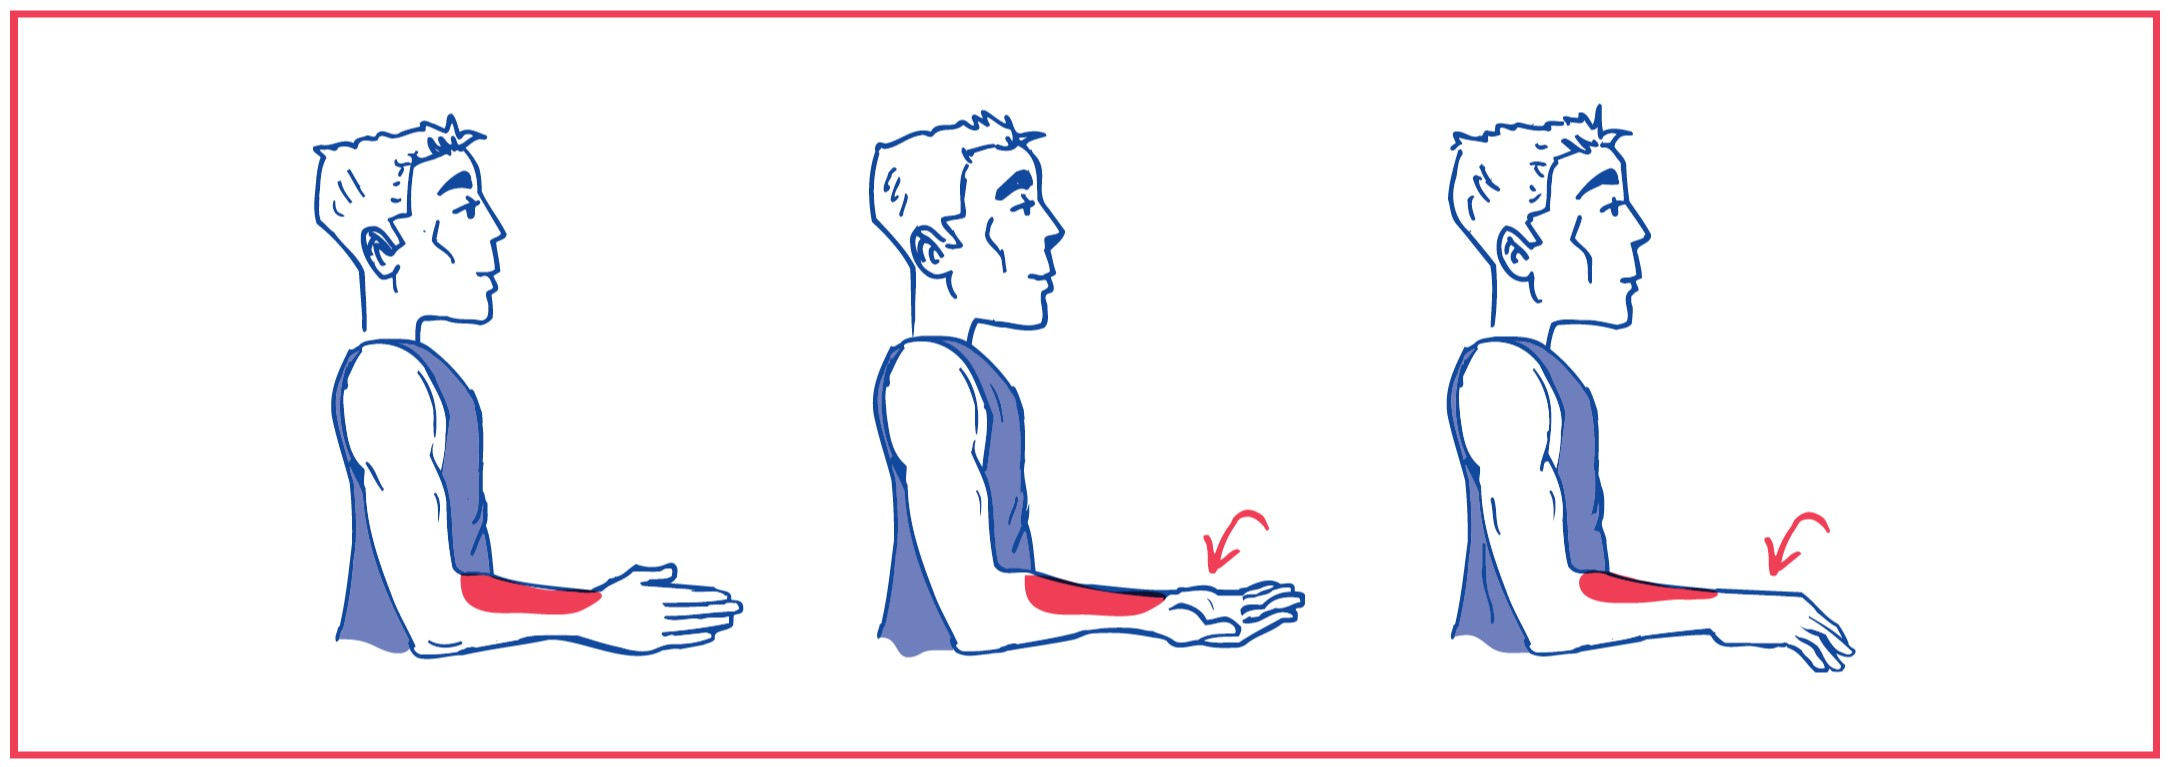 1. Free supination (turning palm up) and pronation (turning palm down)